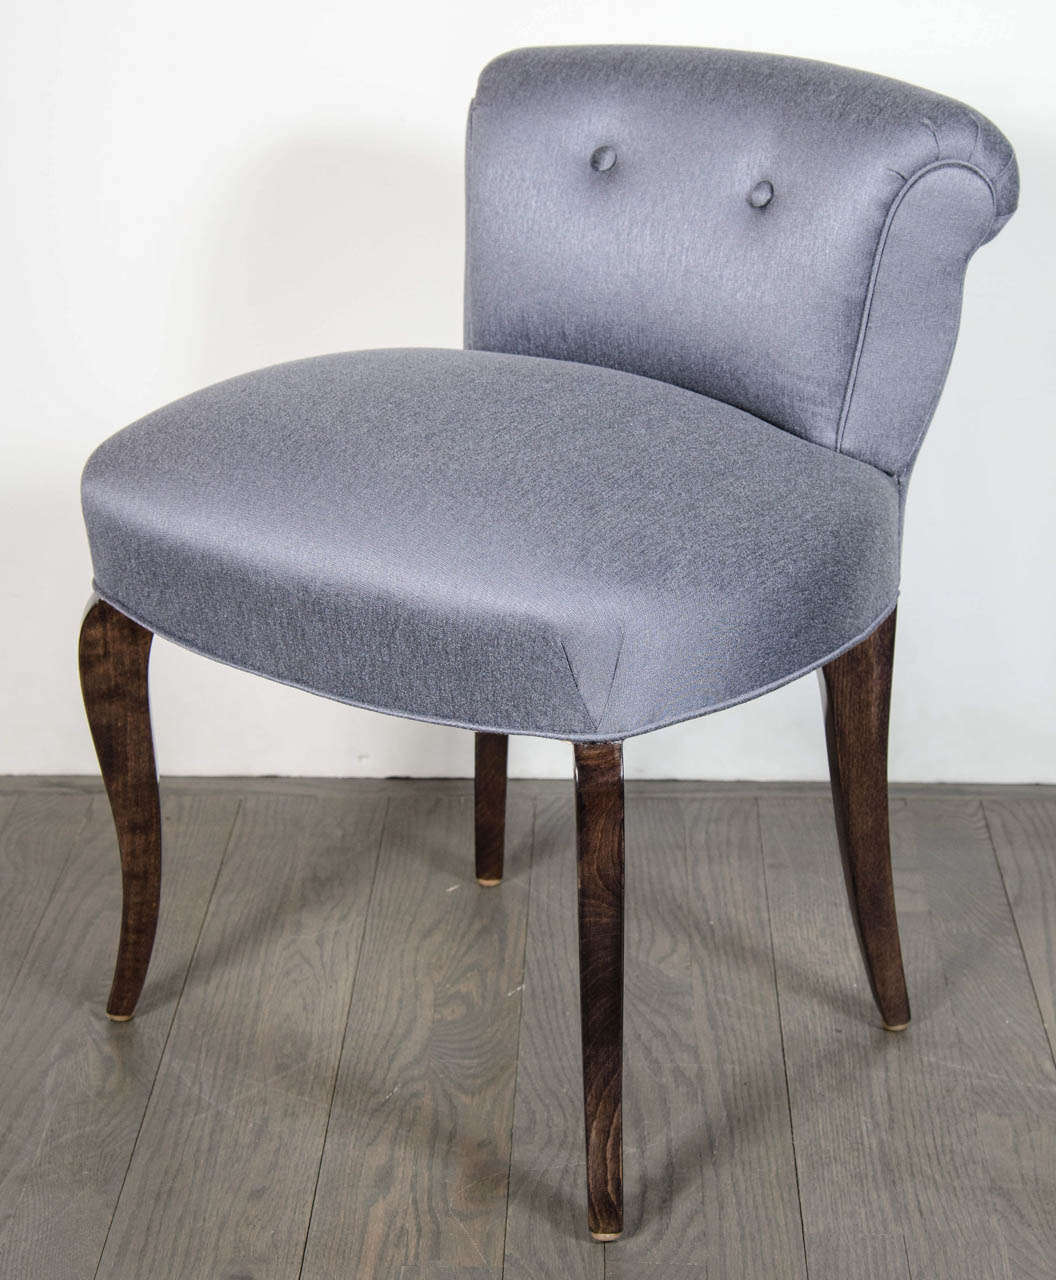 1940u0027s Hollywood Vanity Chair Upholstered In A Chic Platinum / Blue  Sharkskin. It Has A